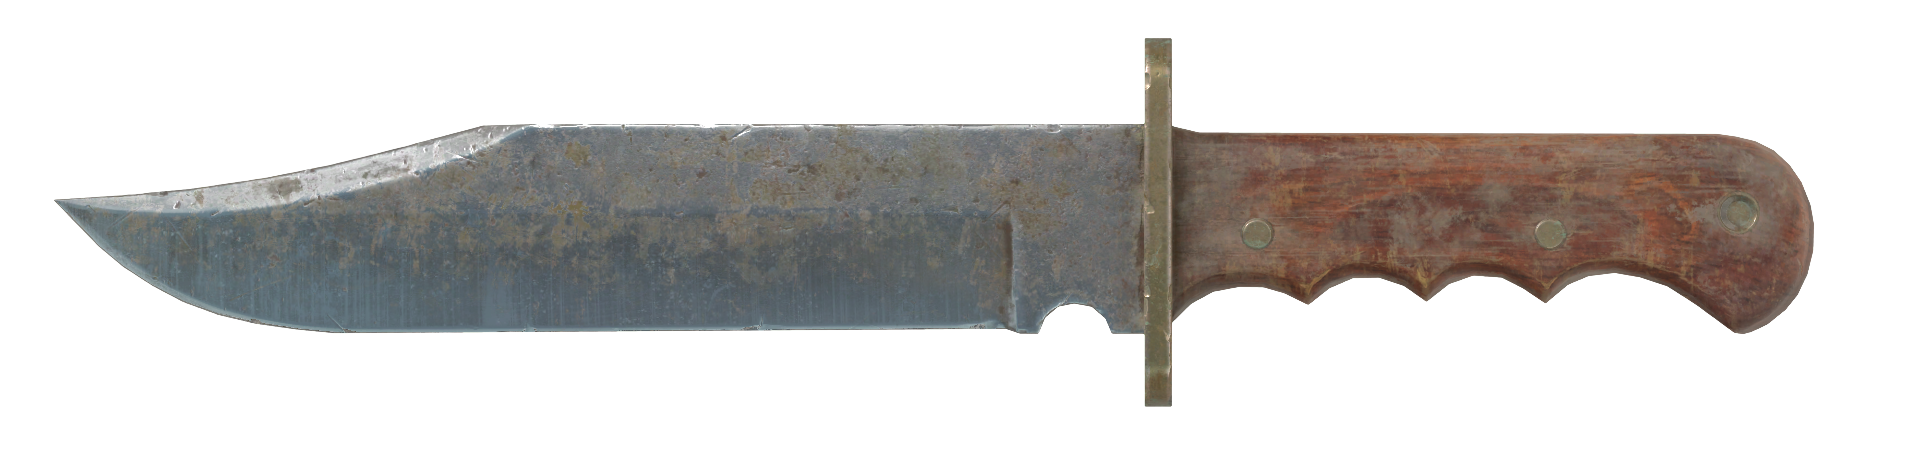 Bowie knife (Fallout 76)